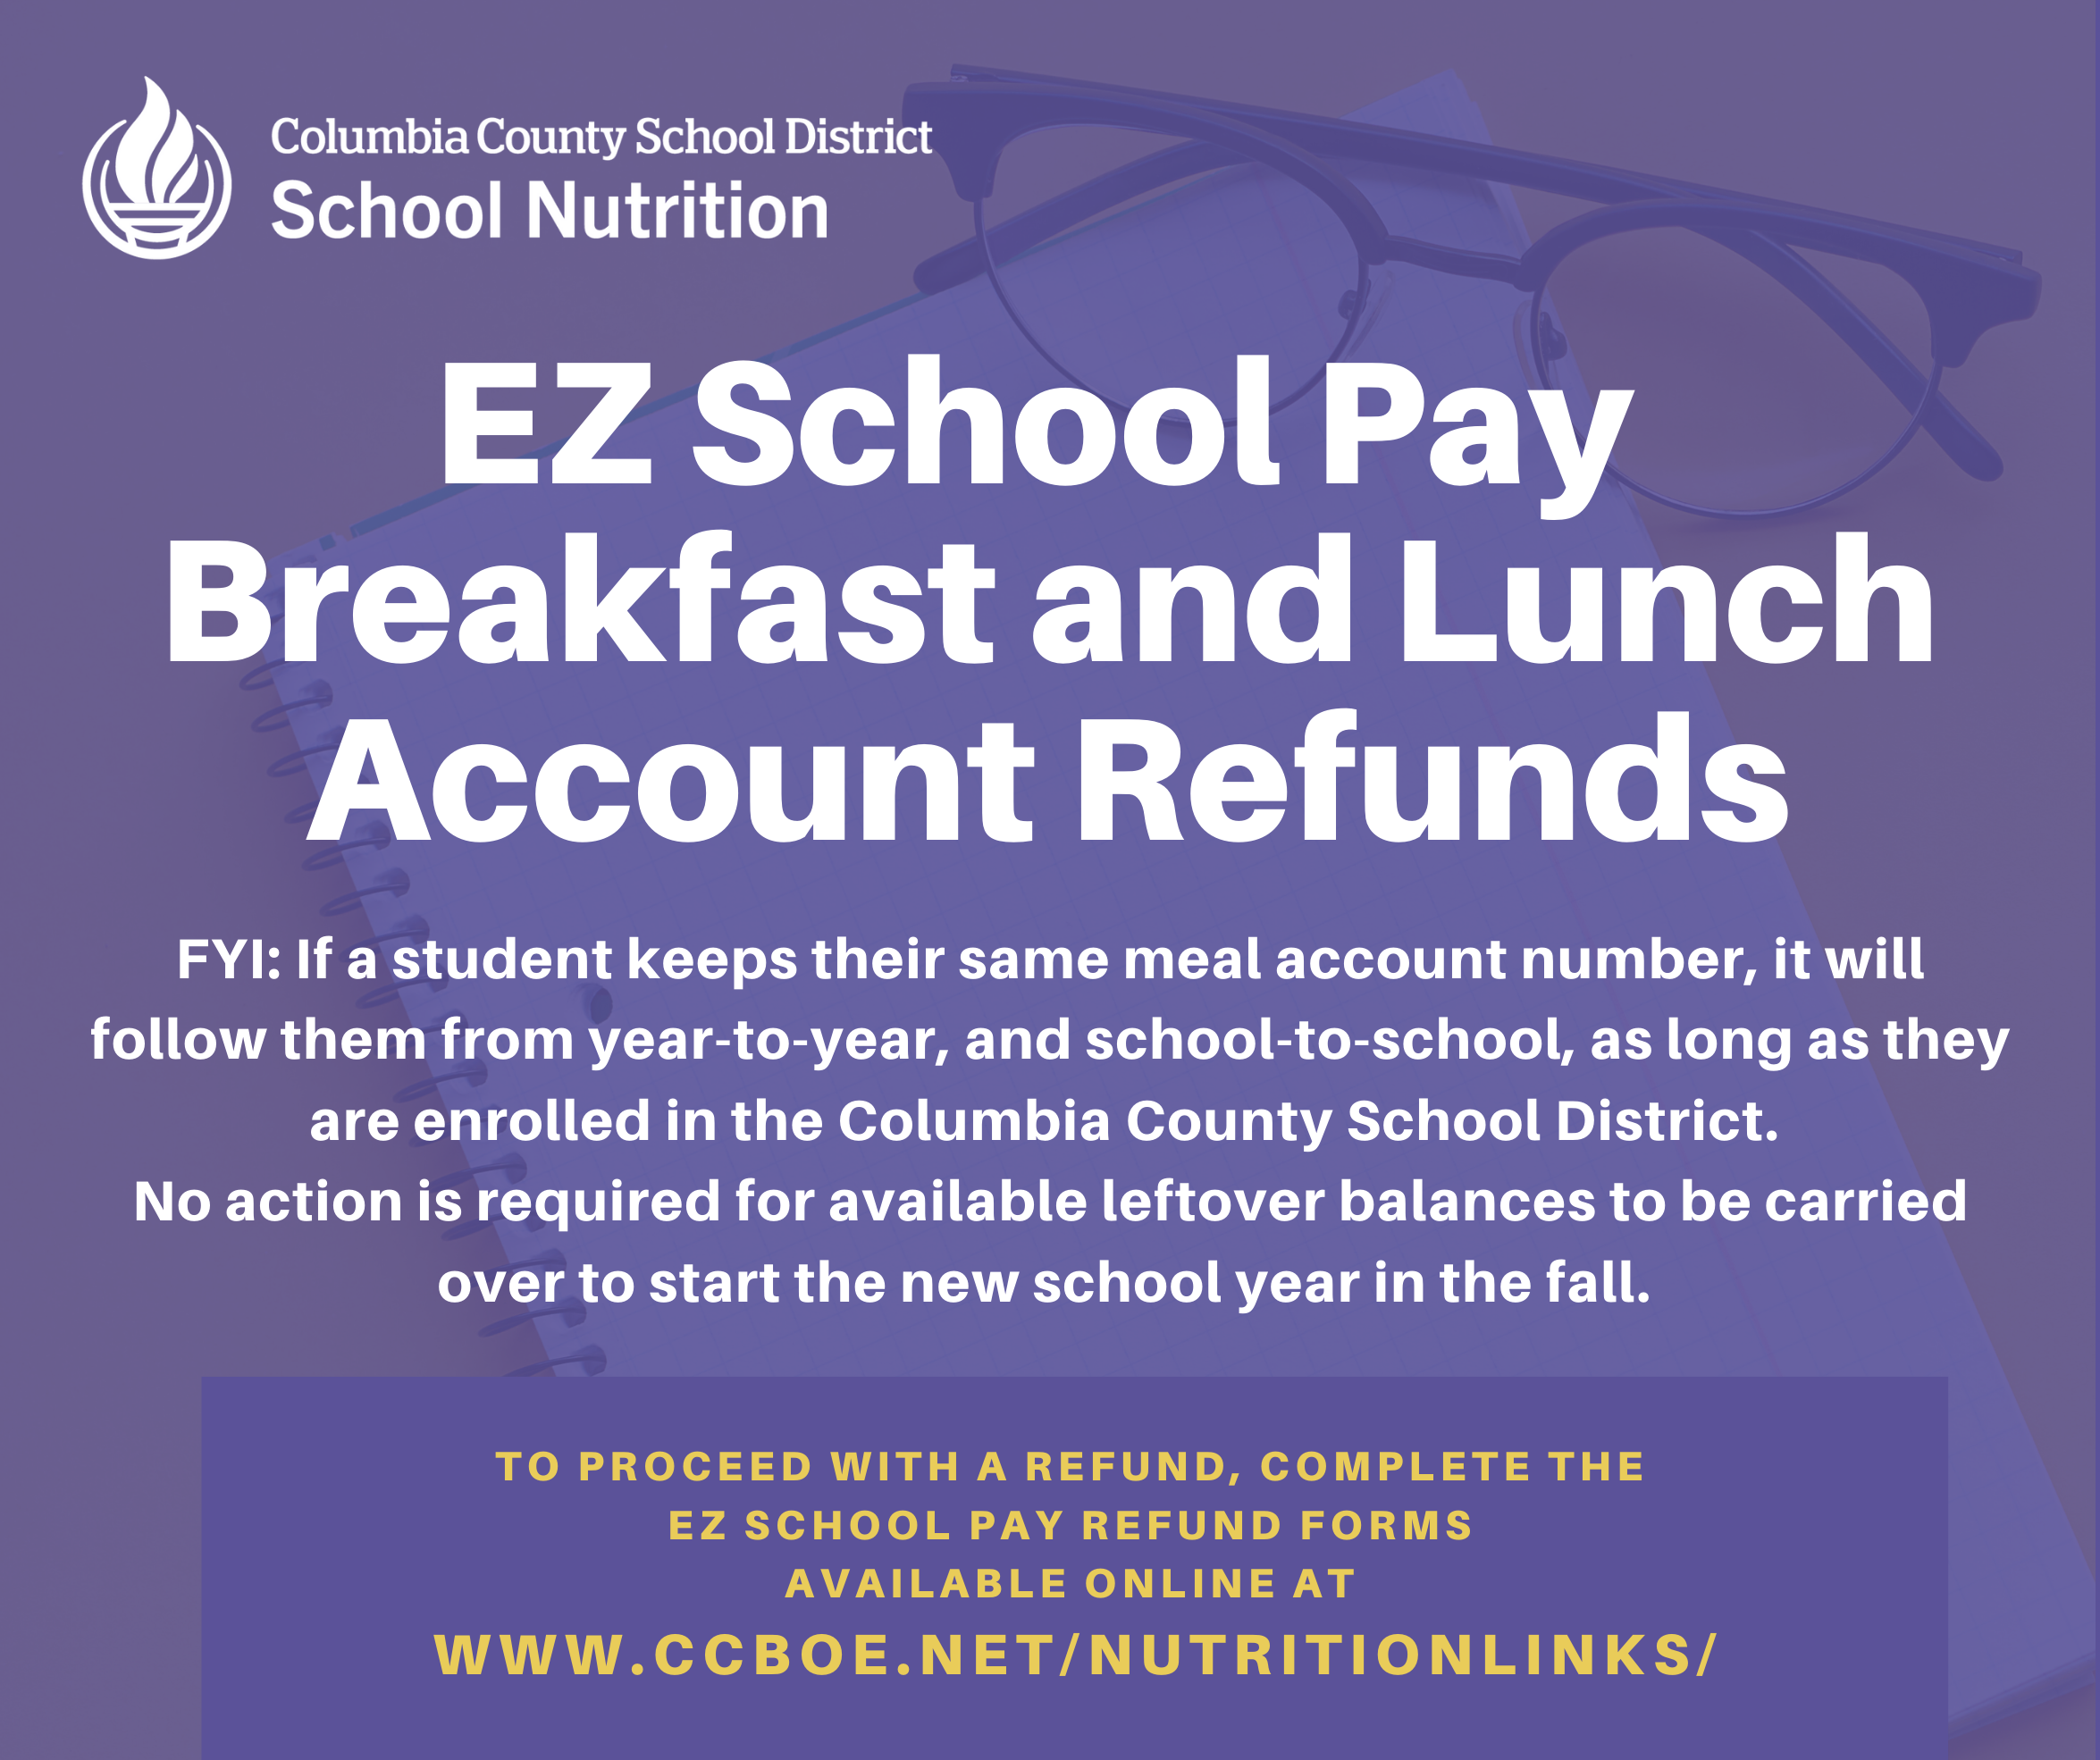 Lunch and Brekfast account refund information